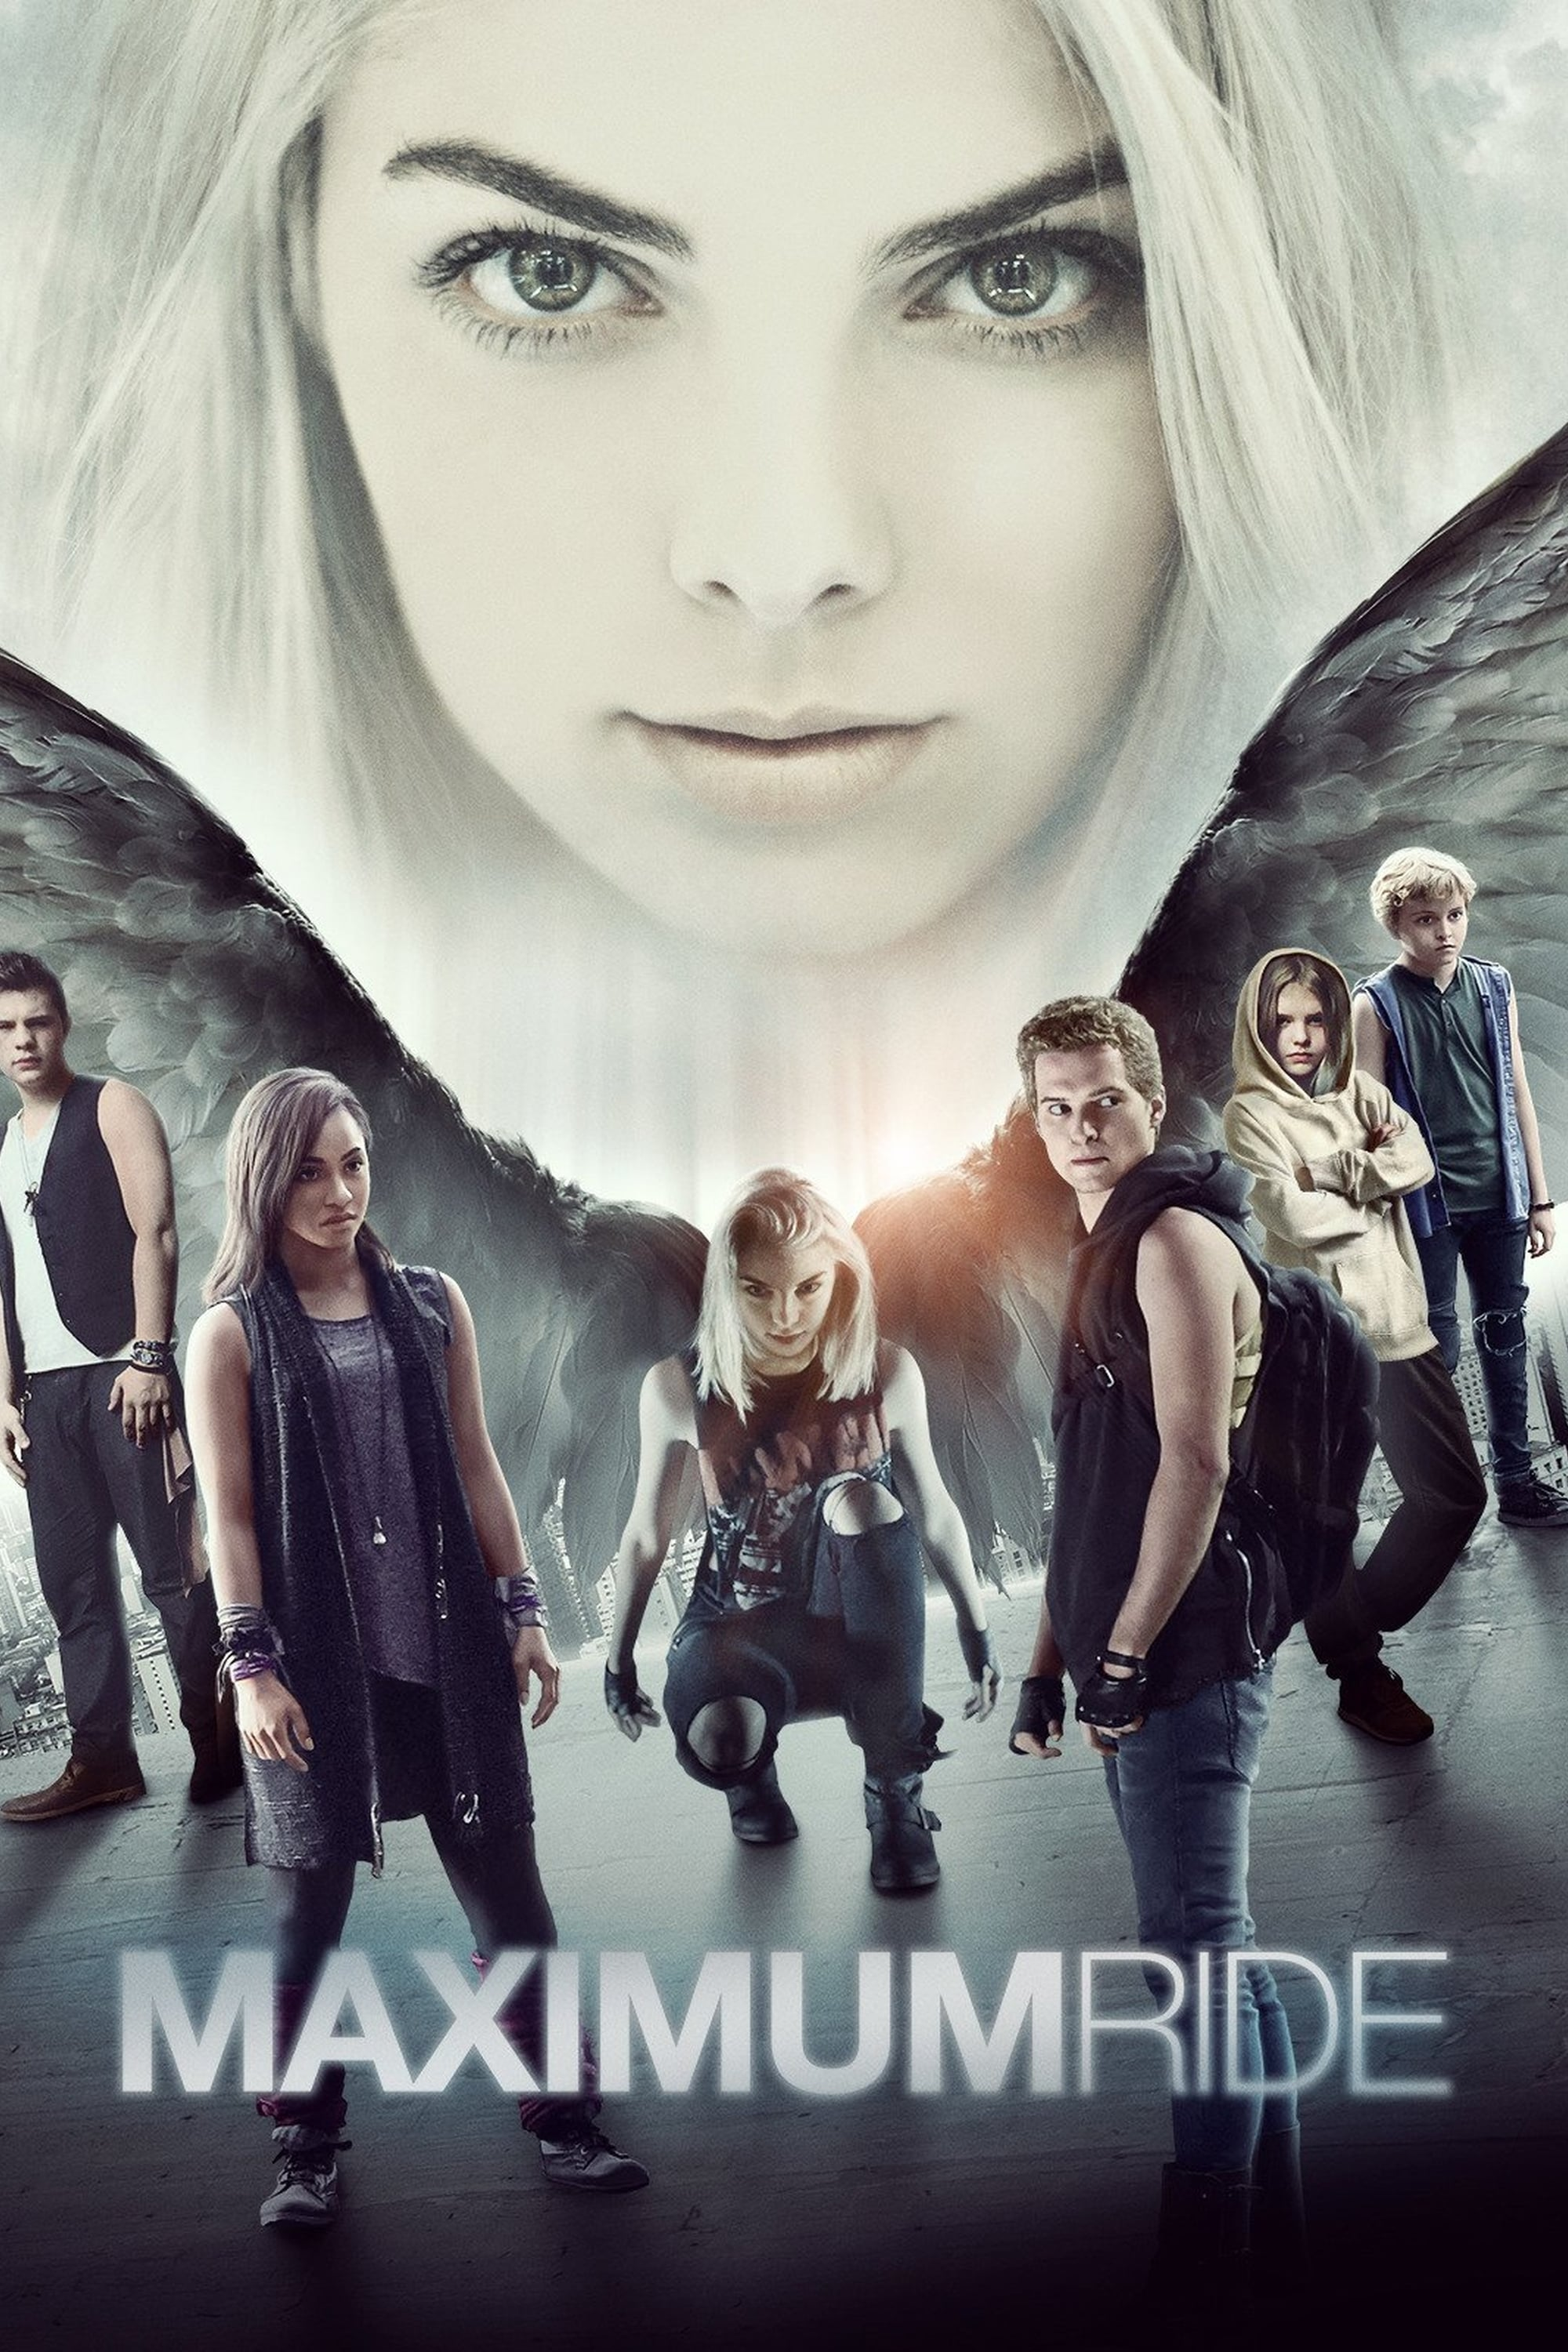 Maximum Ride on FREECABLE TV